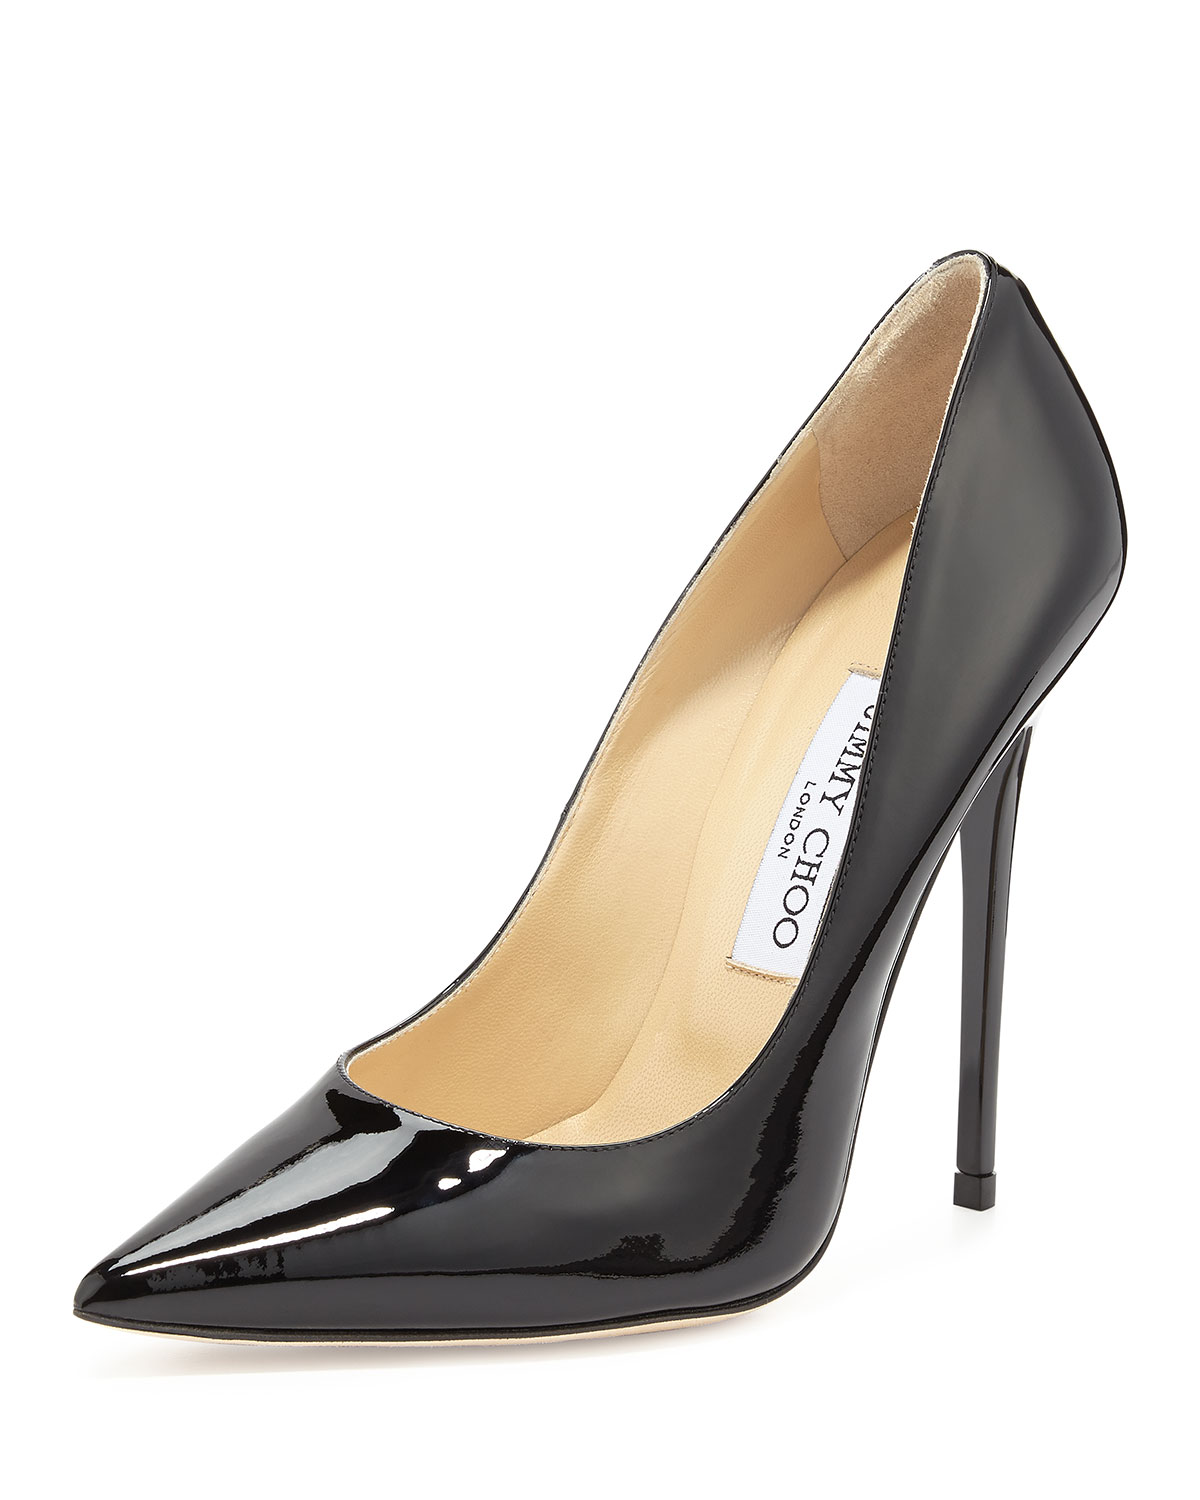 47a1113d17 Jimmy Choo Anouk Patent Leather Pump | Neiman Marcus